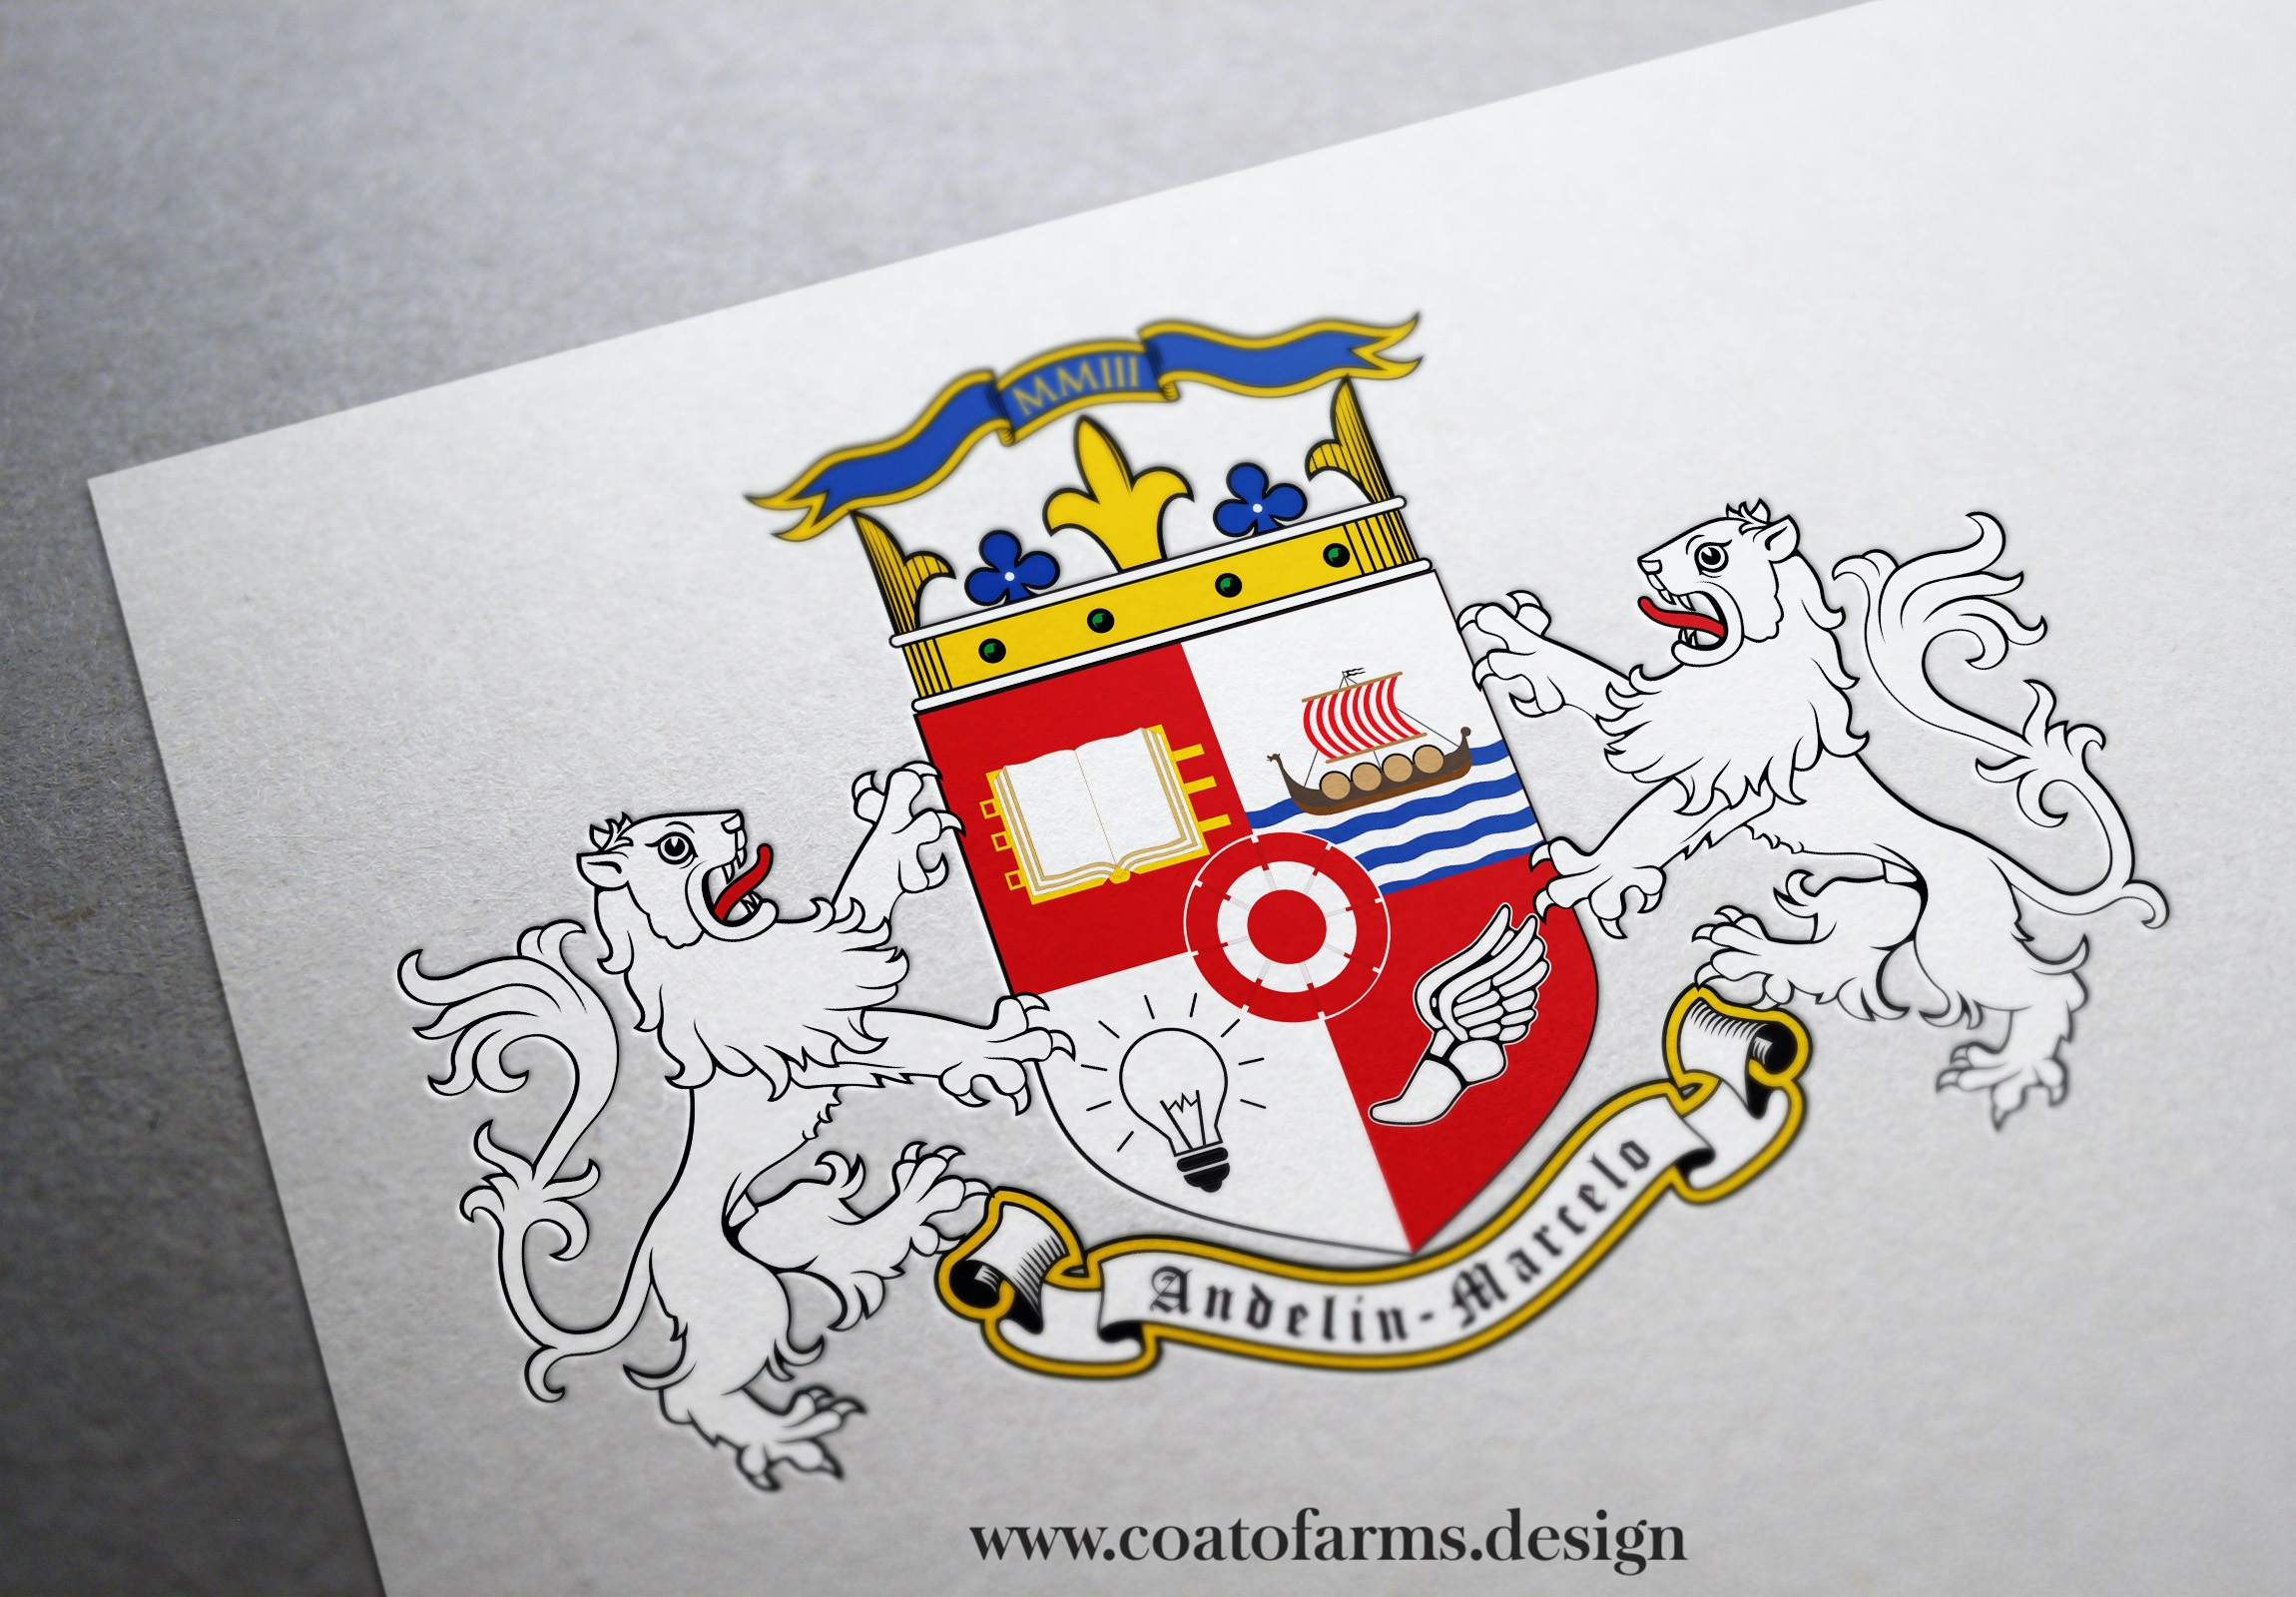 Coat of arms (emblem) I designed for a company from Peru